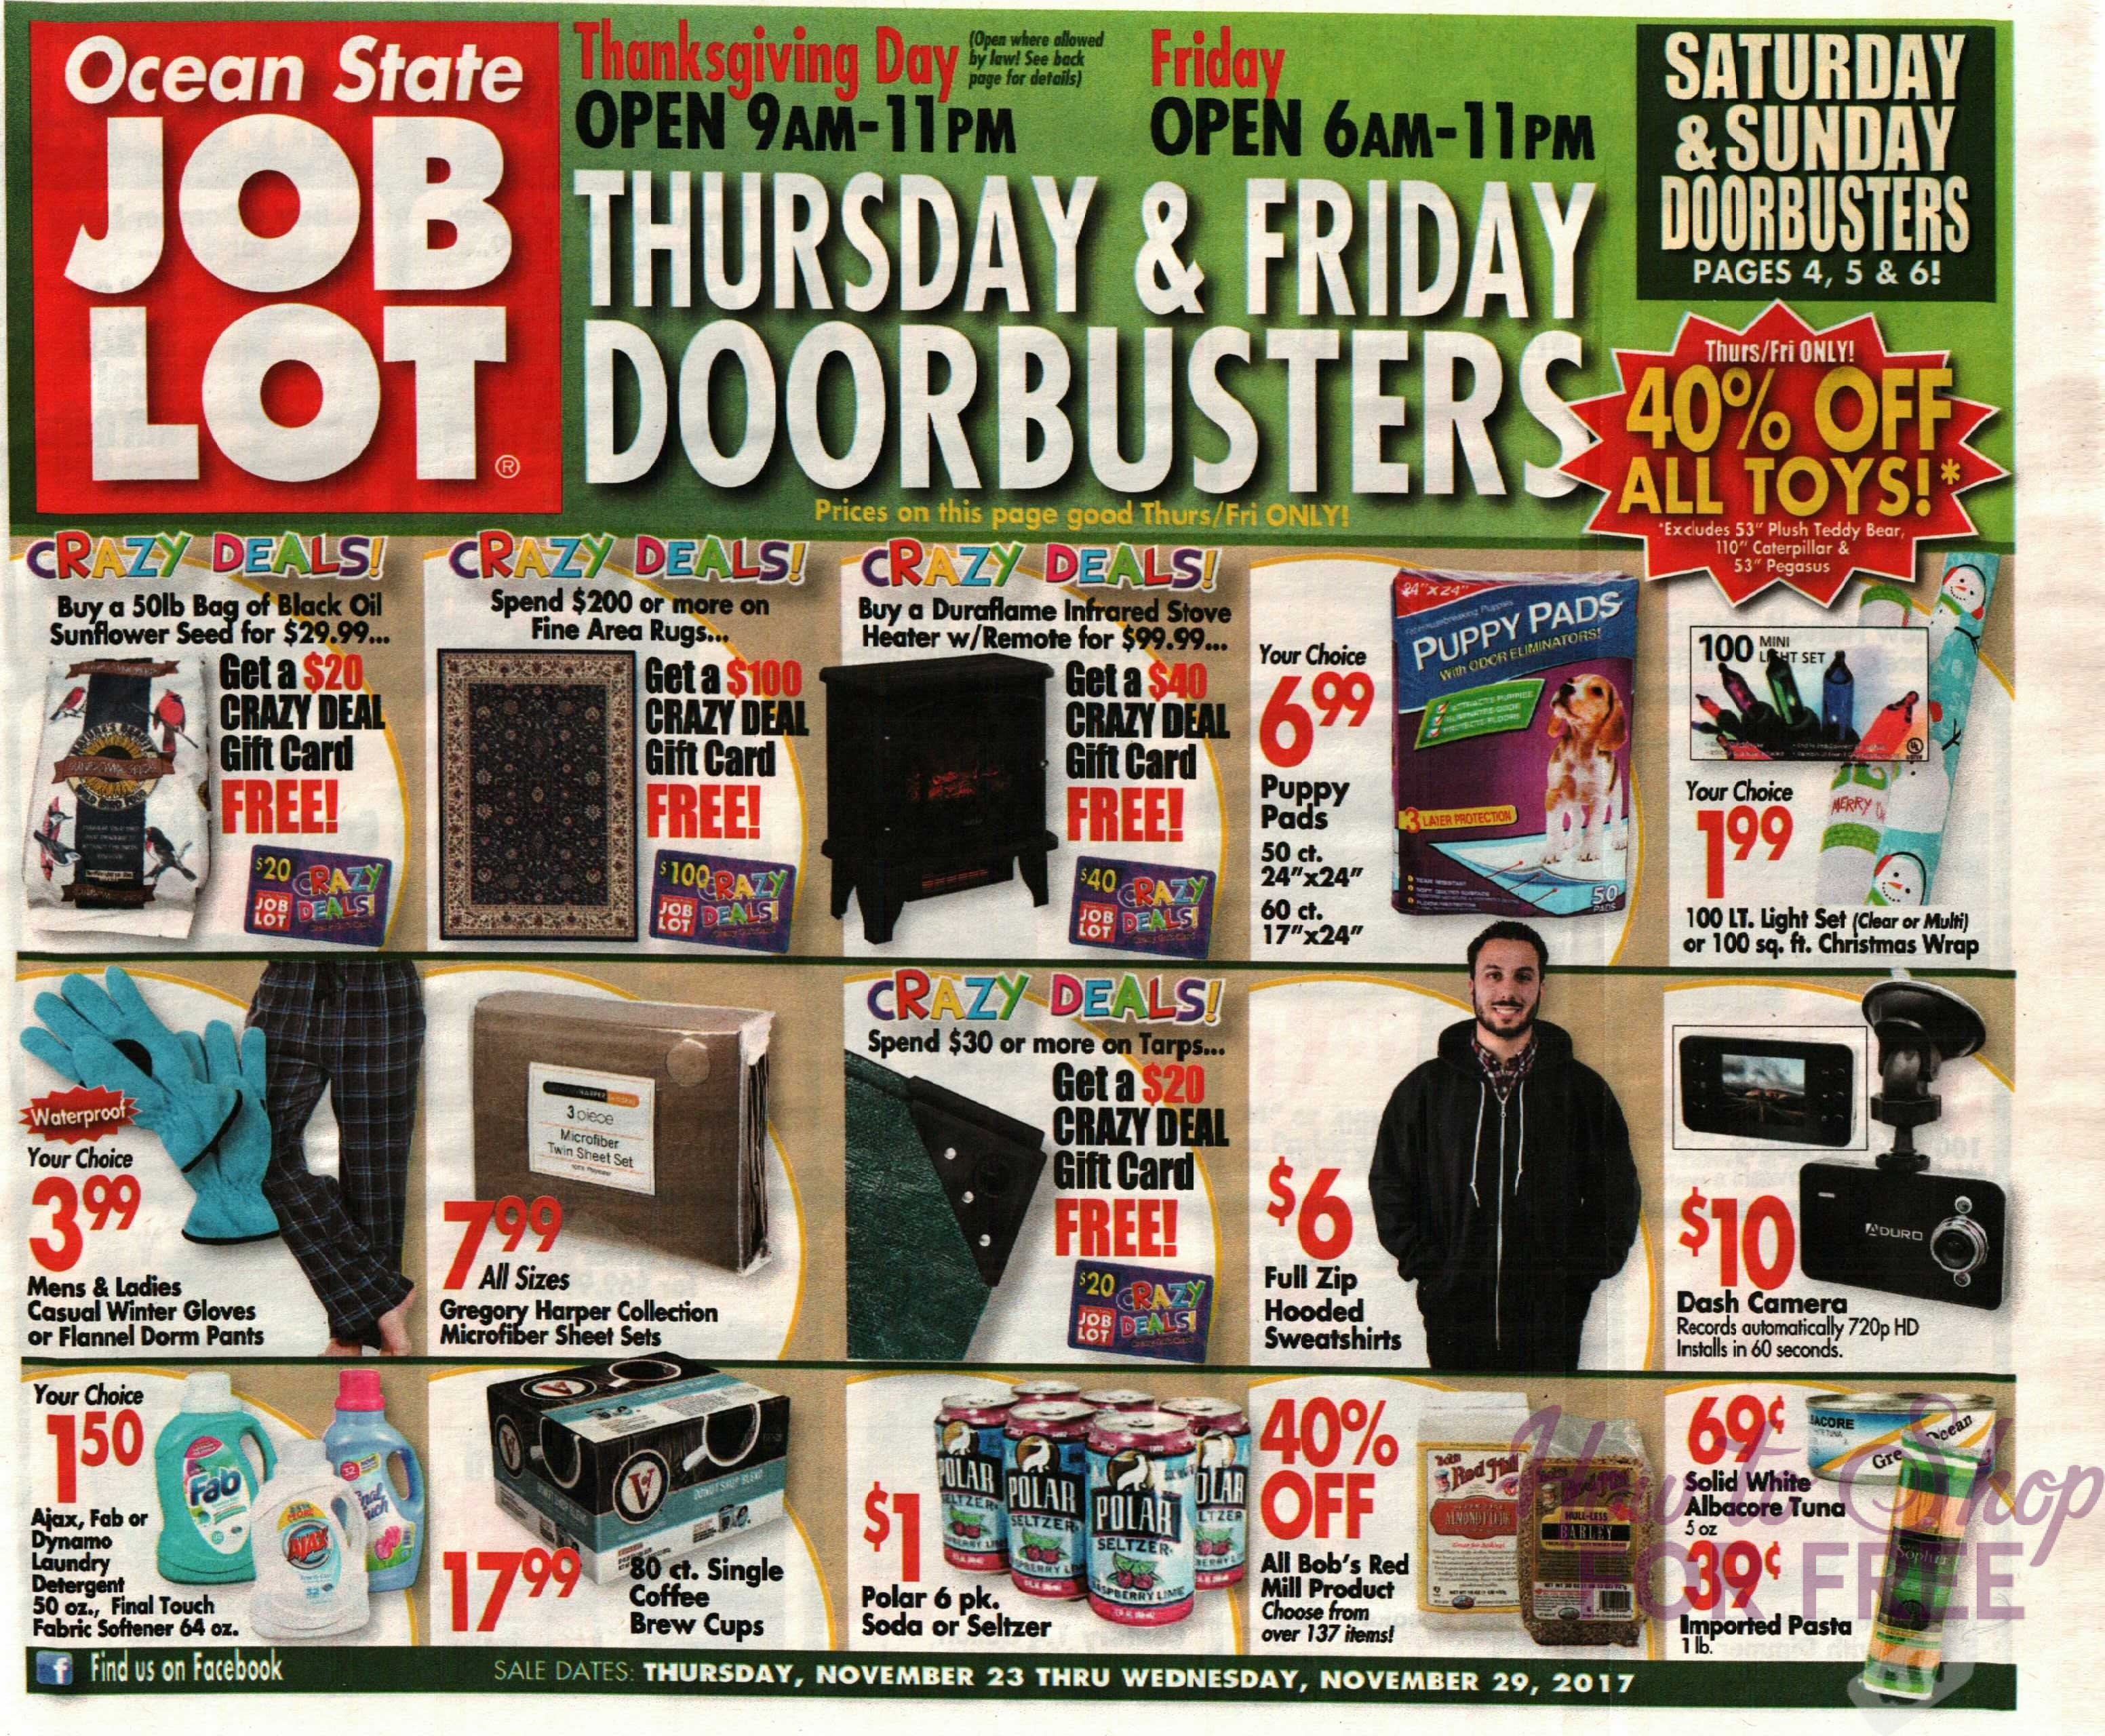 photo regarding Ocean State Job Lot Coupons Printable named OSJL Black Friday Advertisement How toward Retailer For Cost-free with Kathy Spencer